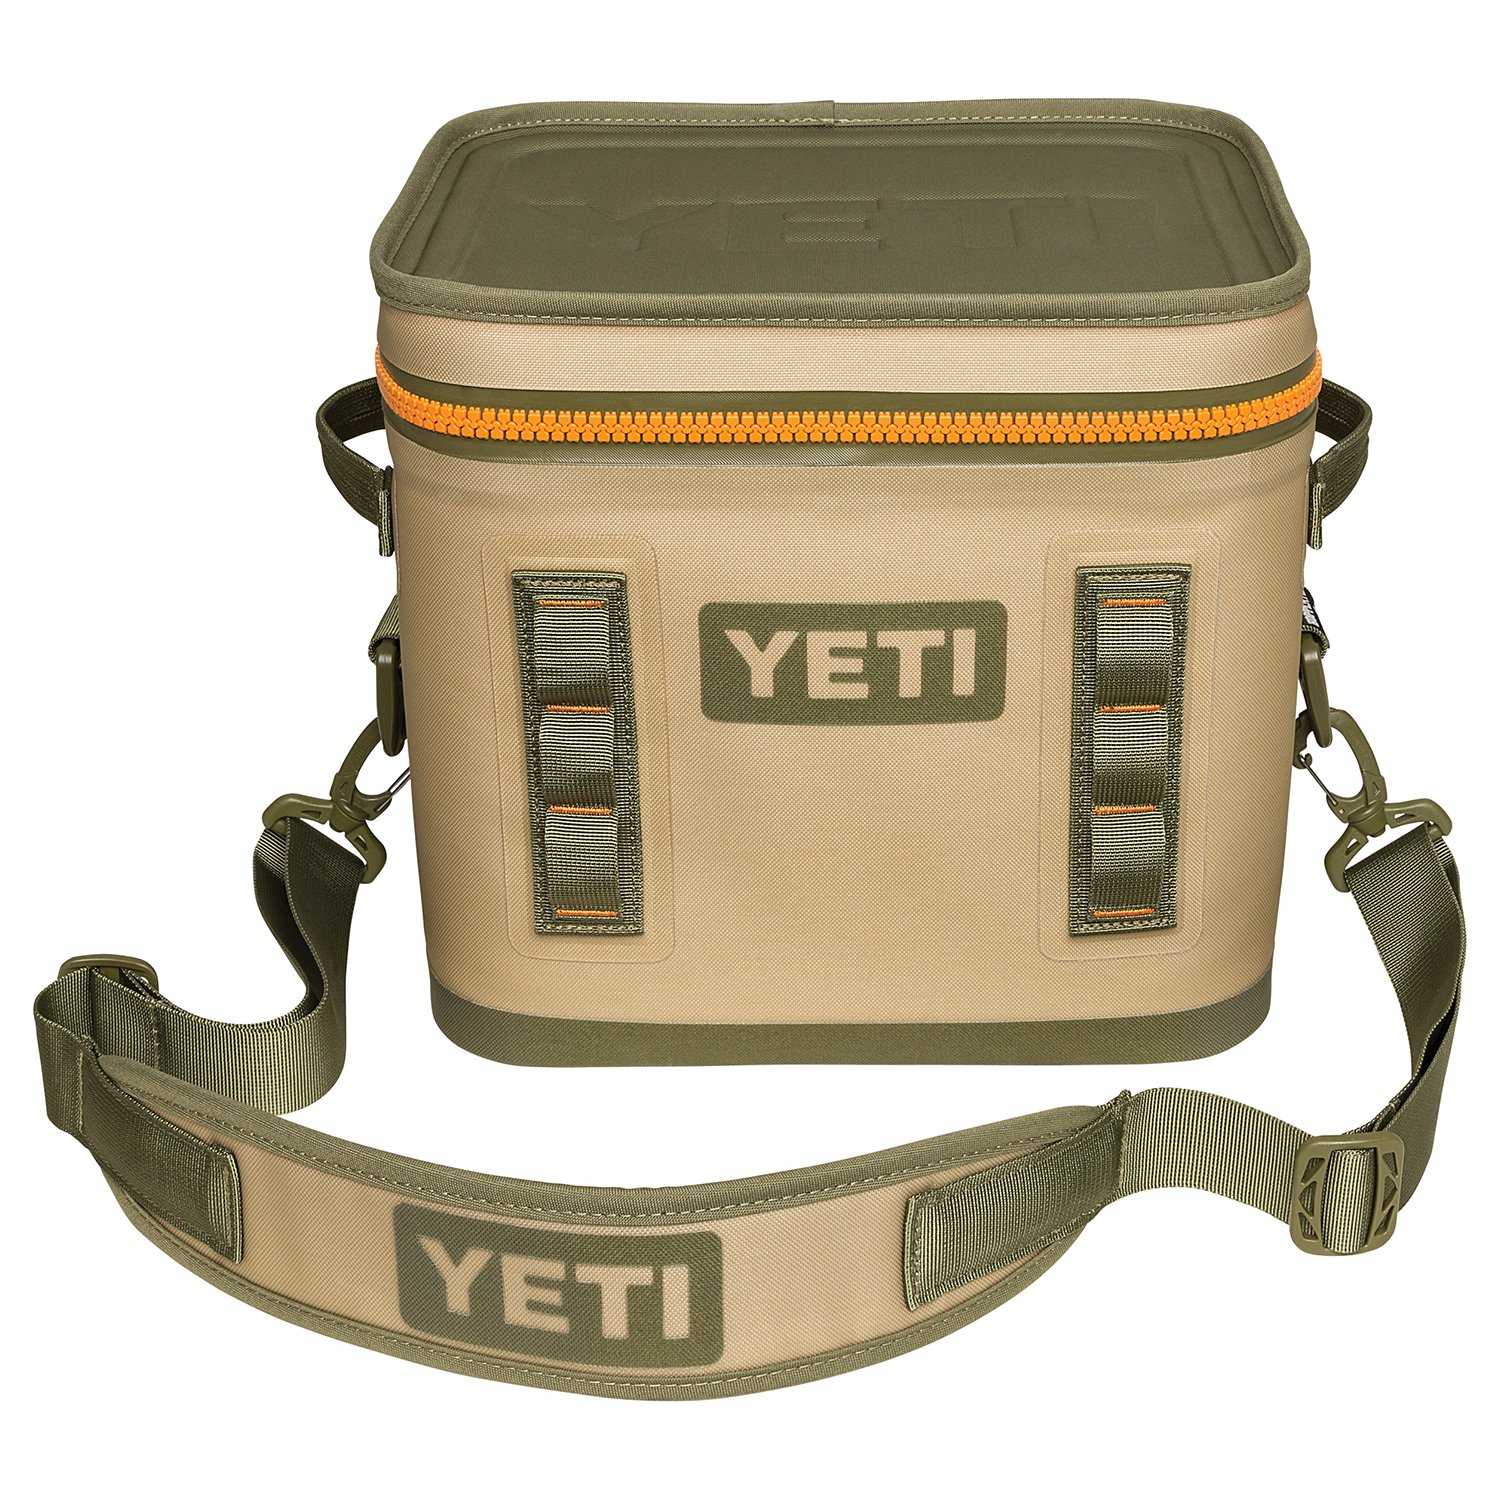 Exceptional Used Outdoor Kitchen Equipment Part - 10: YETI COOLERS 18010120000 Flip 12 Tan Cooler